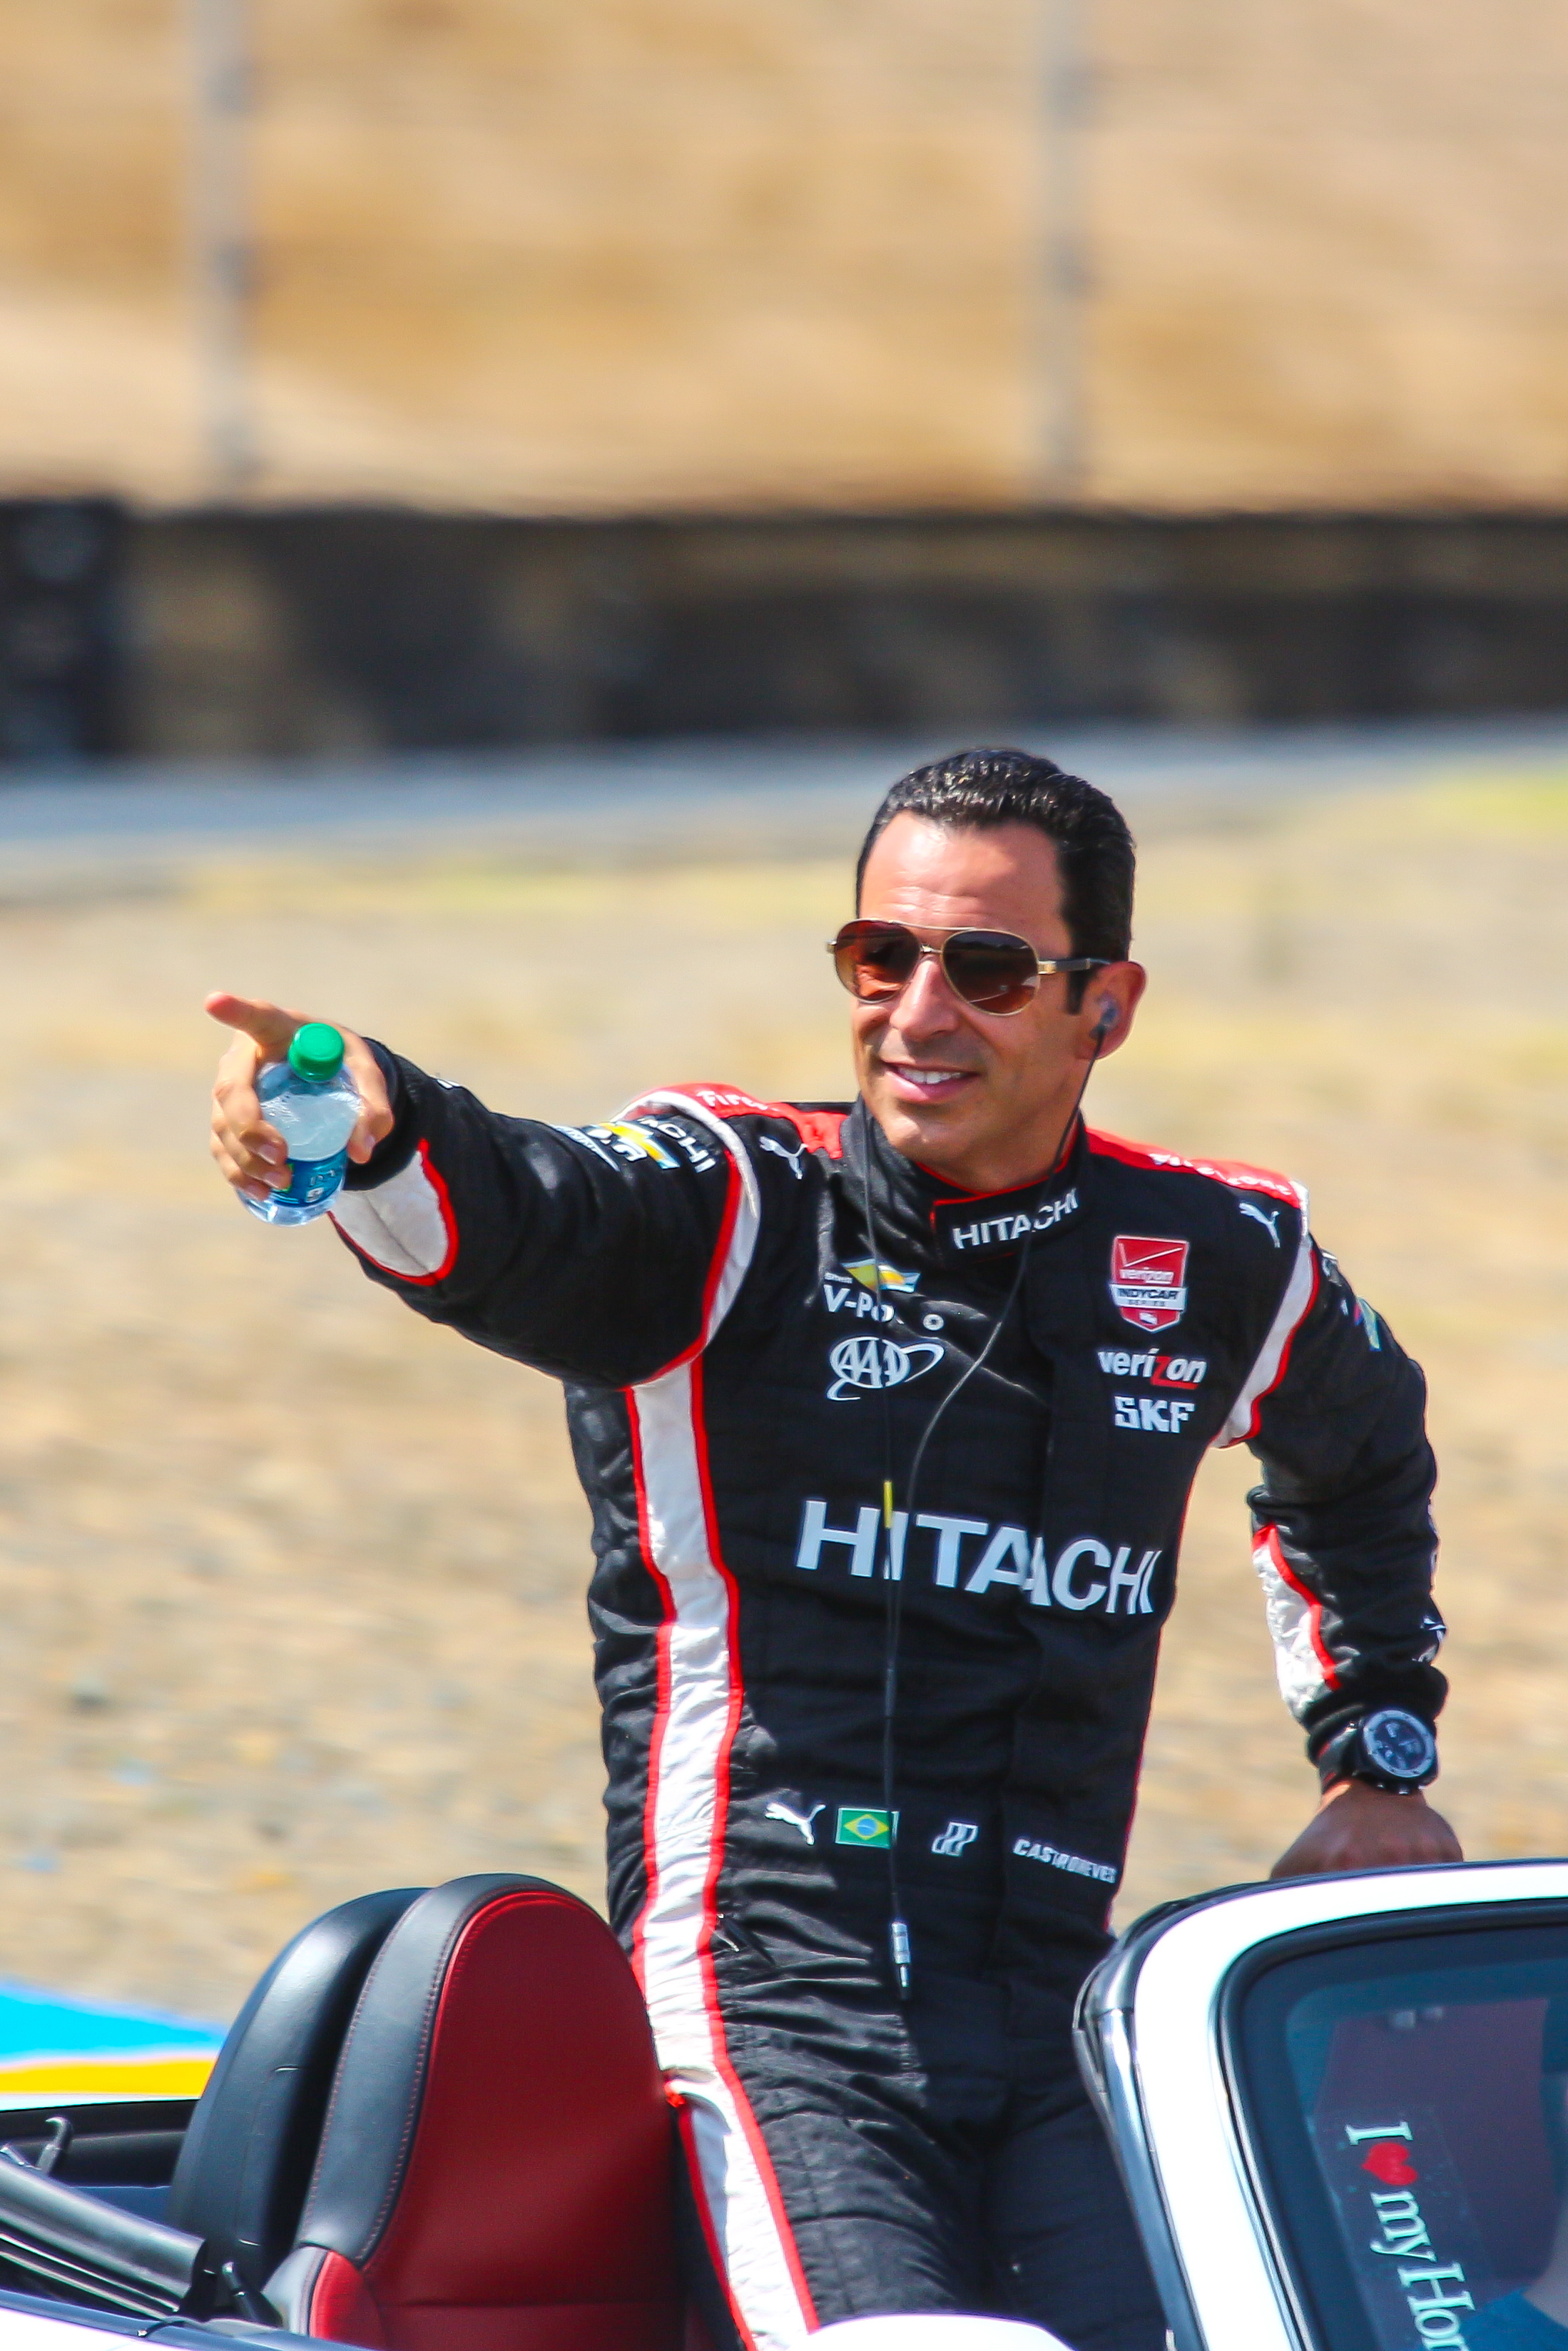 Helio Castroneves points to some cheering fans.